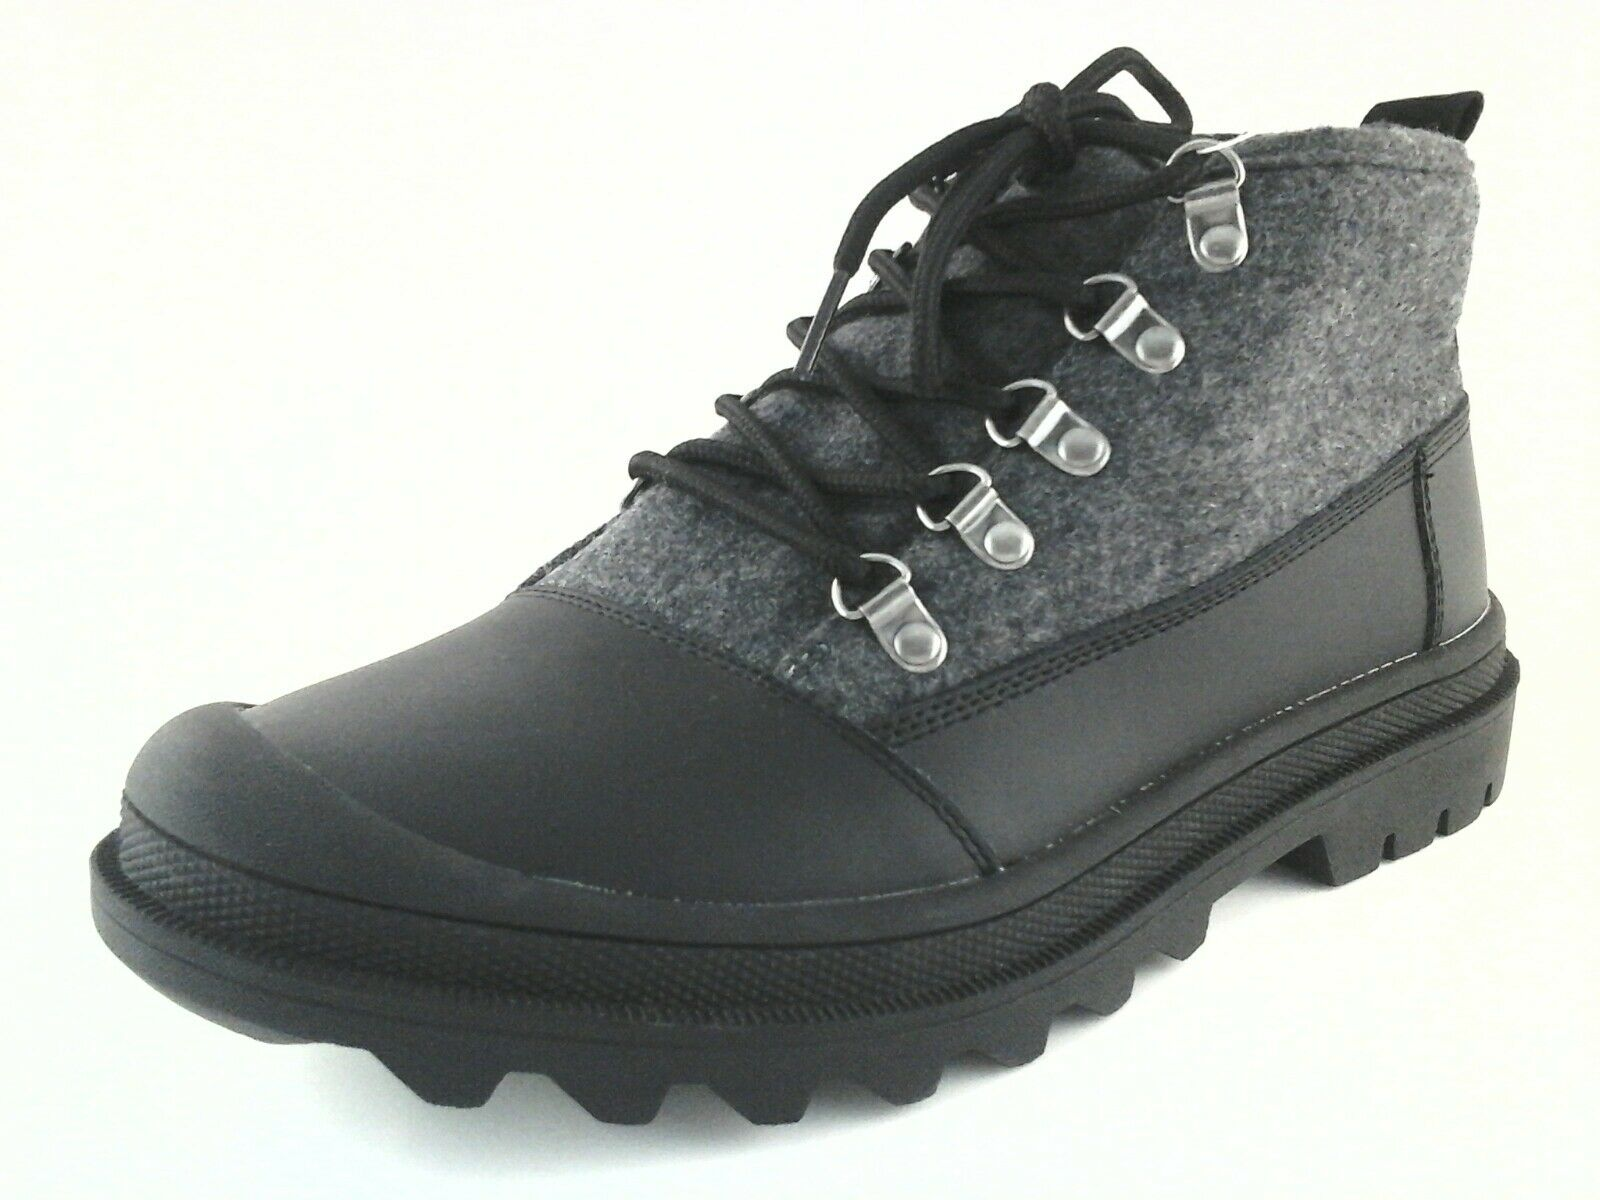 TOMS Hiking Boots CORDOVA Shoes WOOL